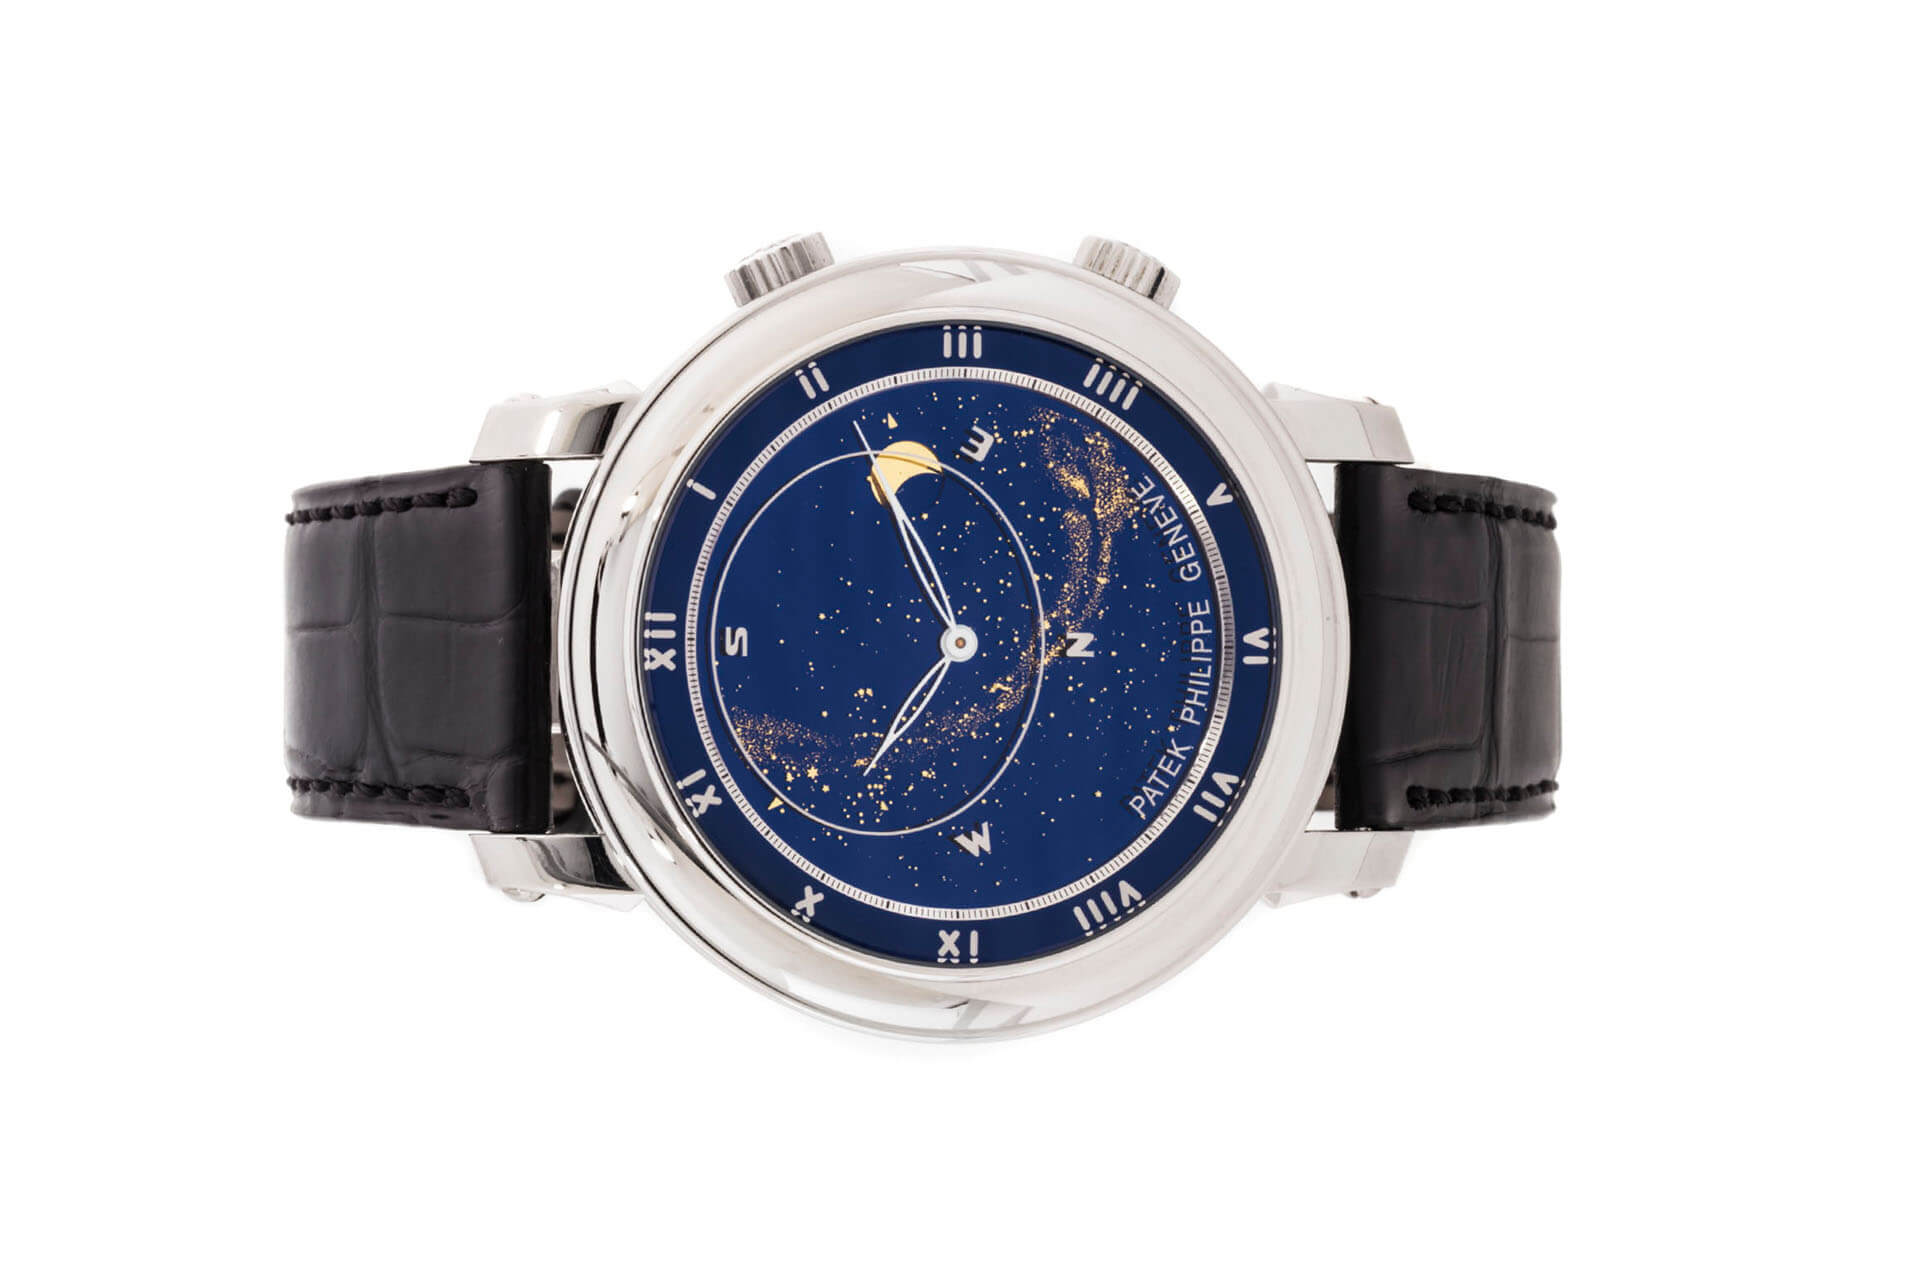 Đồng Hồ Patek Philippe Grand Complications 5102G-001